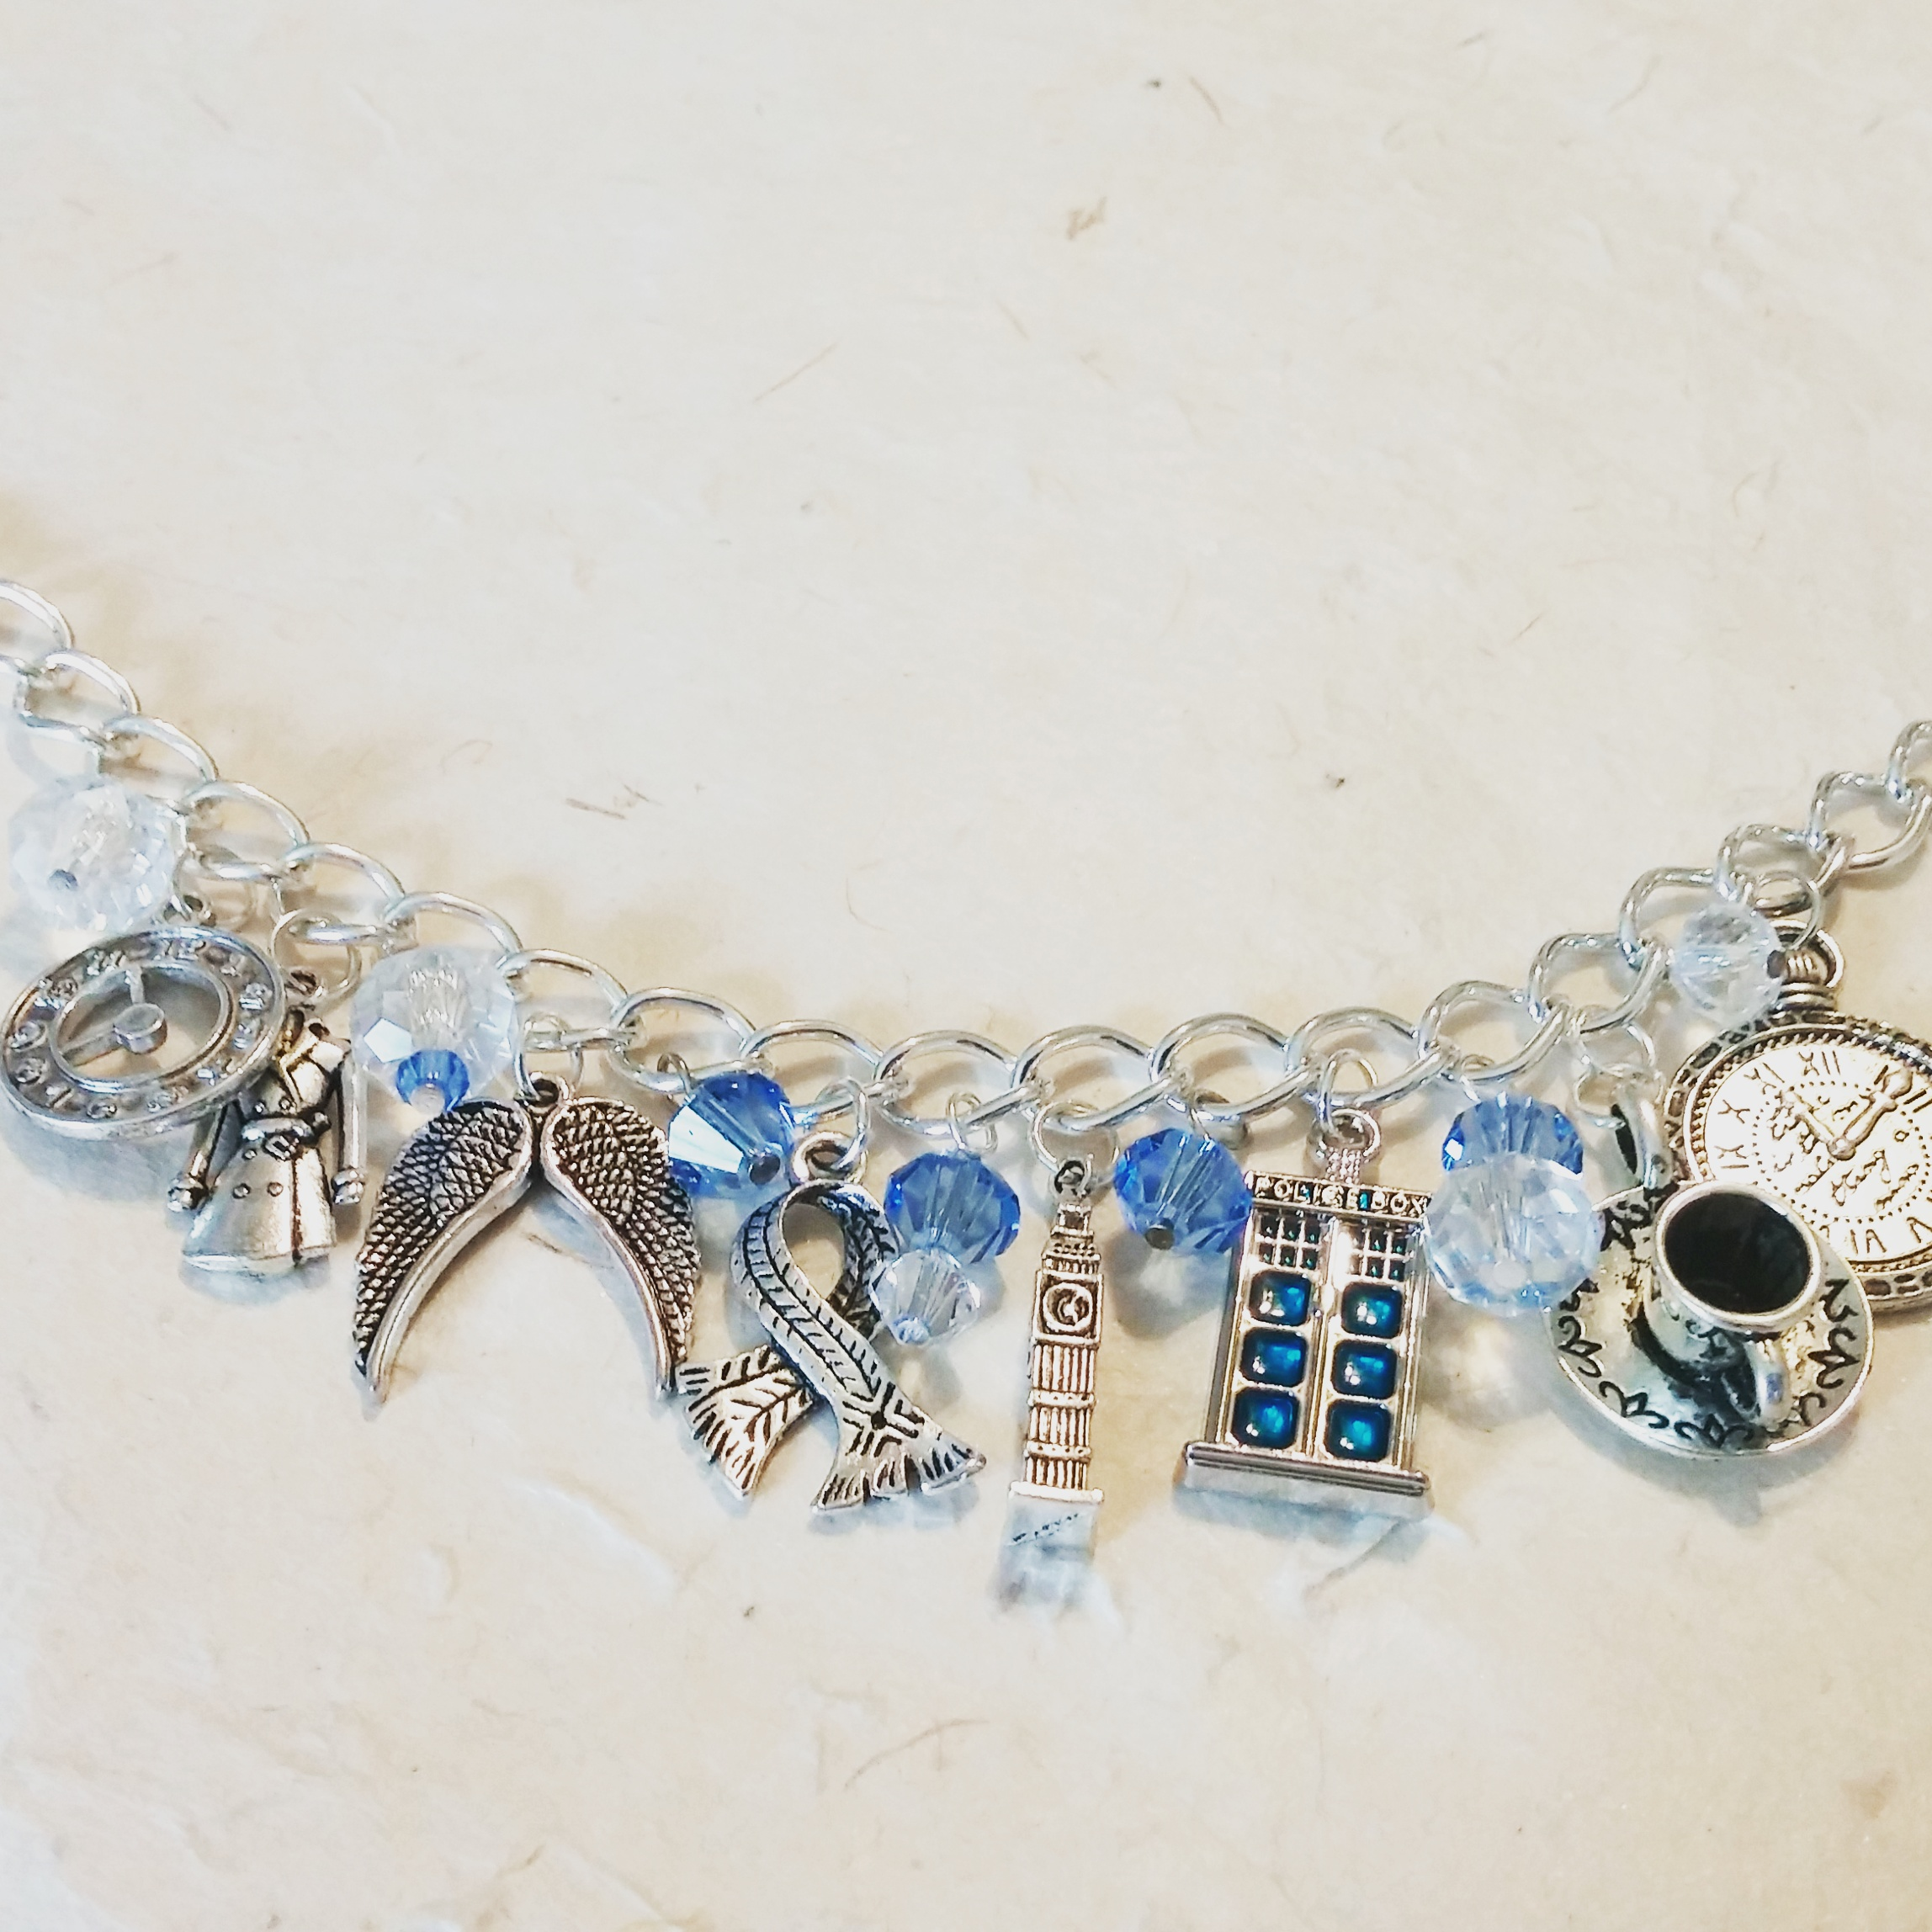 Dr. Who Inspired Bracelet